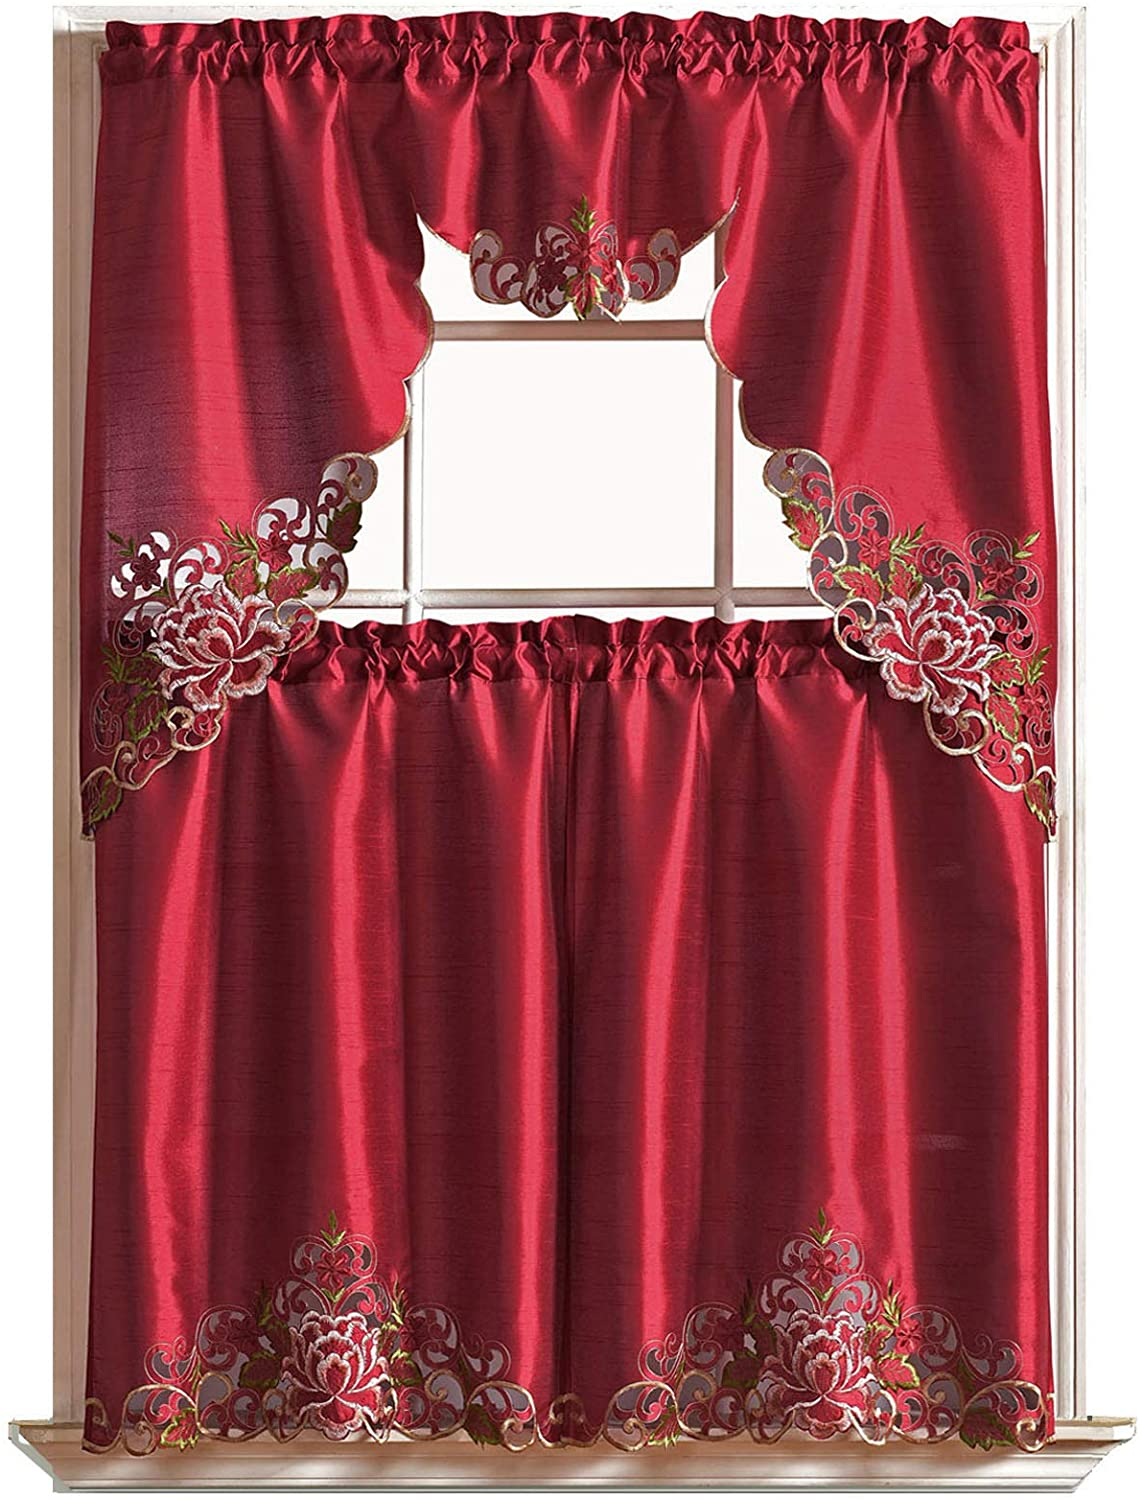 Passionate Bloom Kitchen Curtain Set Swag Valance and Tier Set. Nice Embroidery on Faux Silk Fabric with cutworks. (Burgundy)